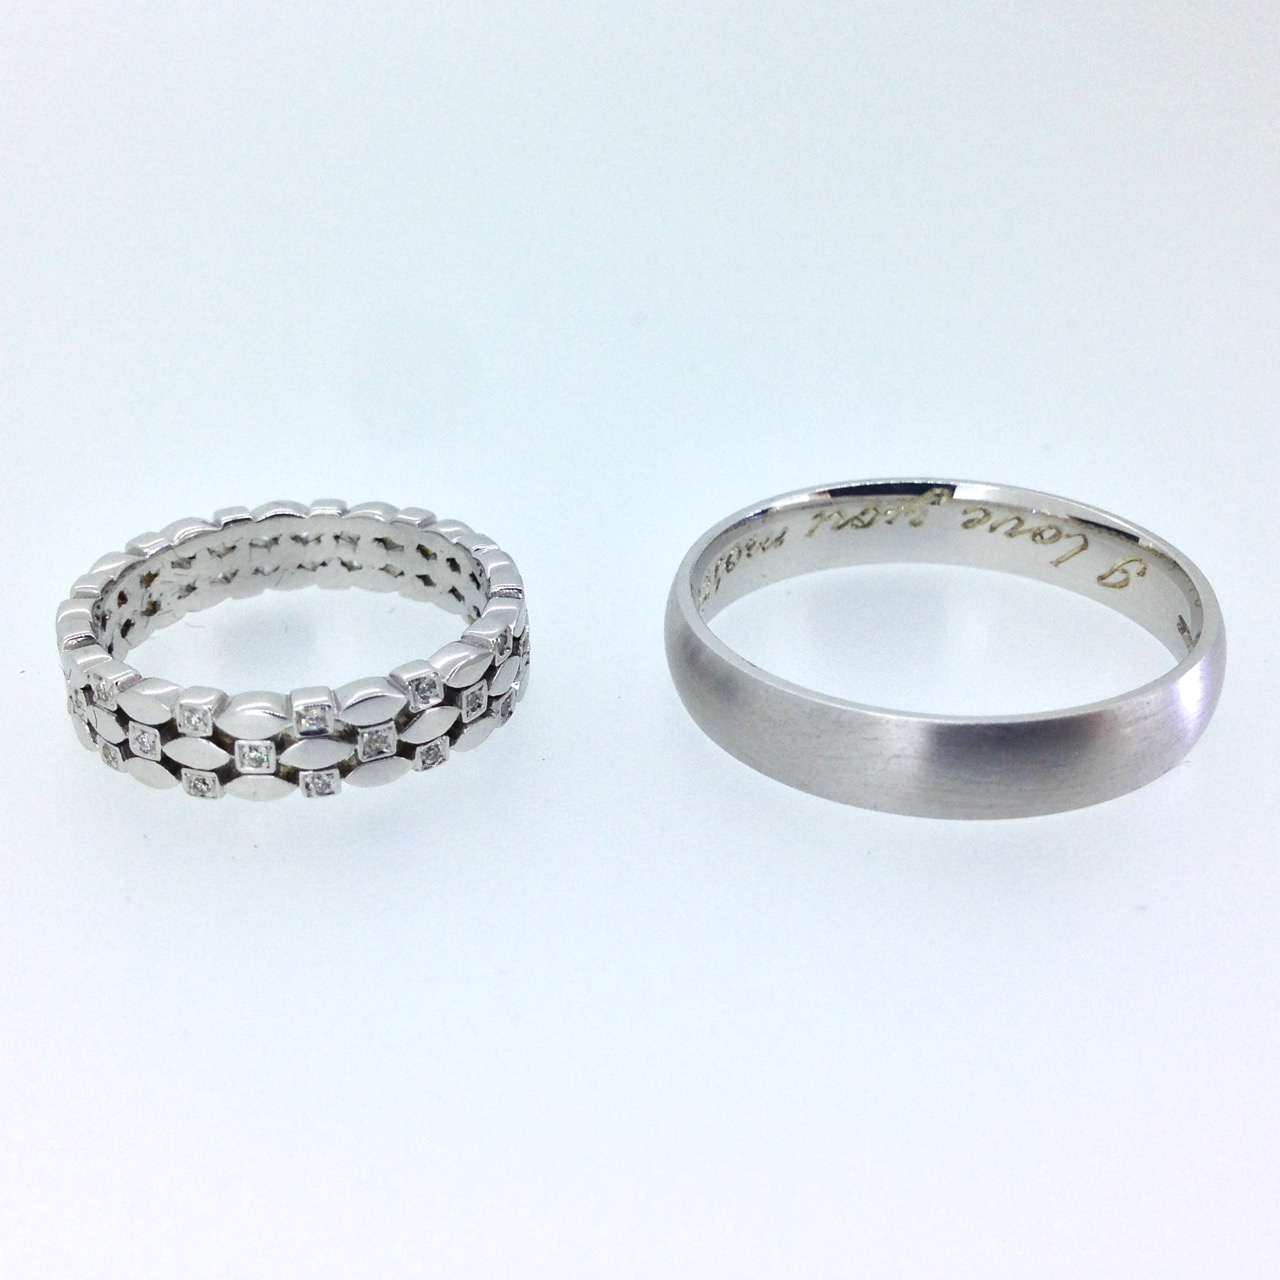 9ct White Gold Custom Wedding Ring Pair with Diamonds and hand engraved message